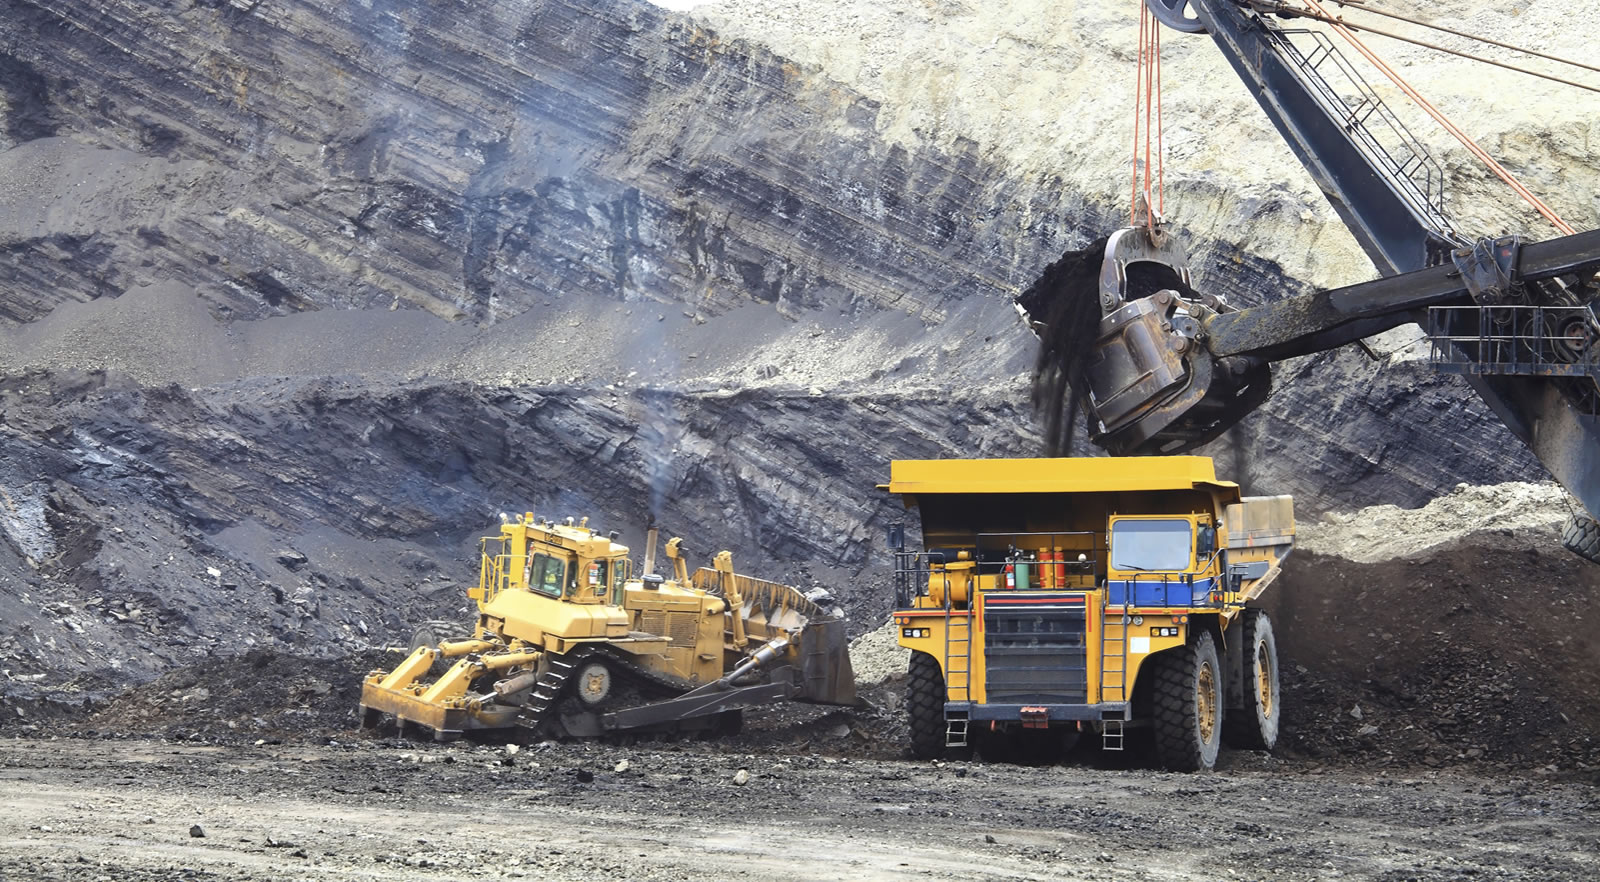 lubrication-mining-wisconsin-illinois-mining